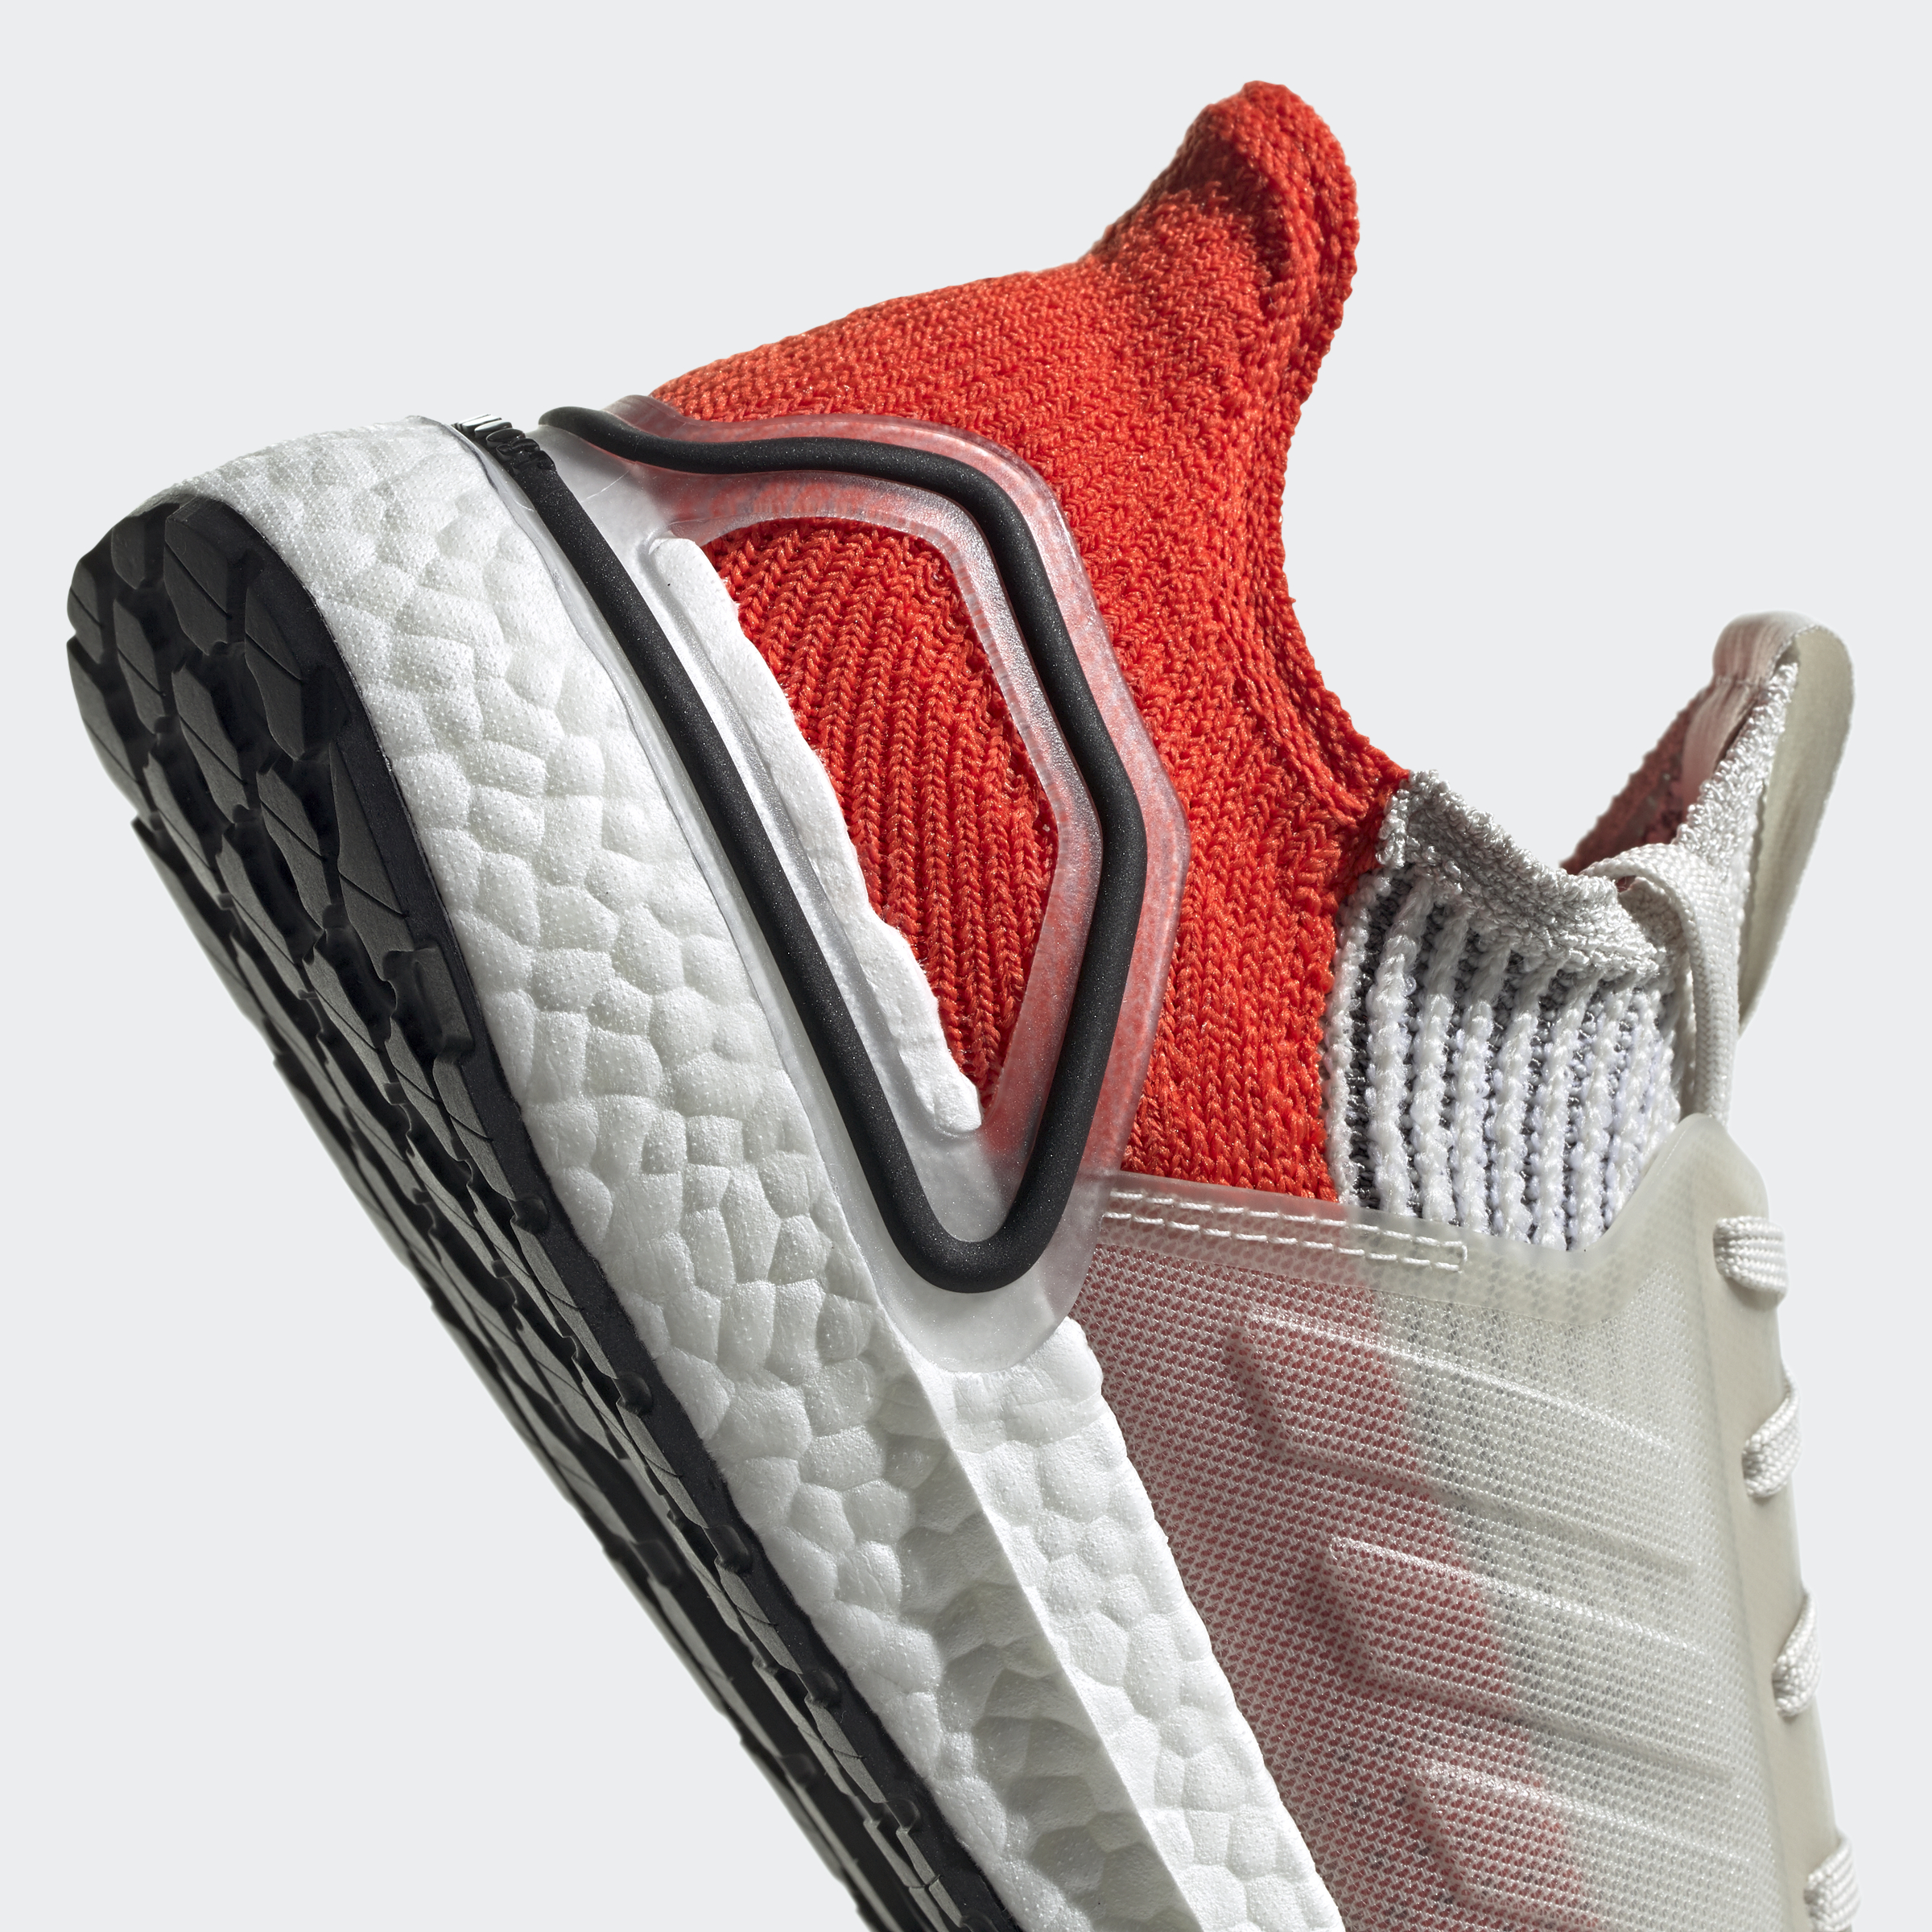 adidas-Ultraboost-19-Shoes-Athletic-amp-Sneakers thumbnail 51